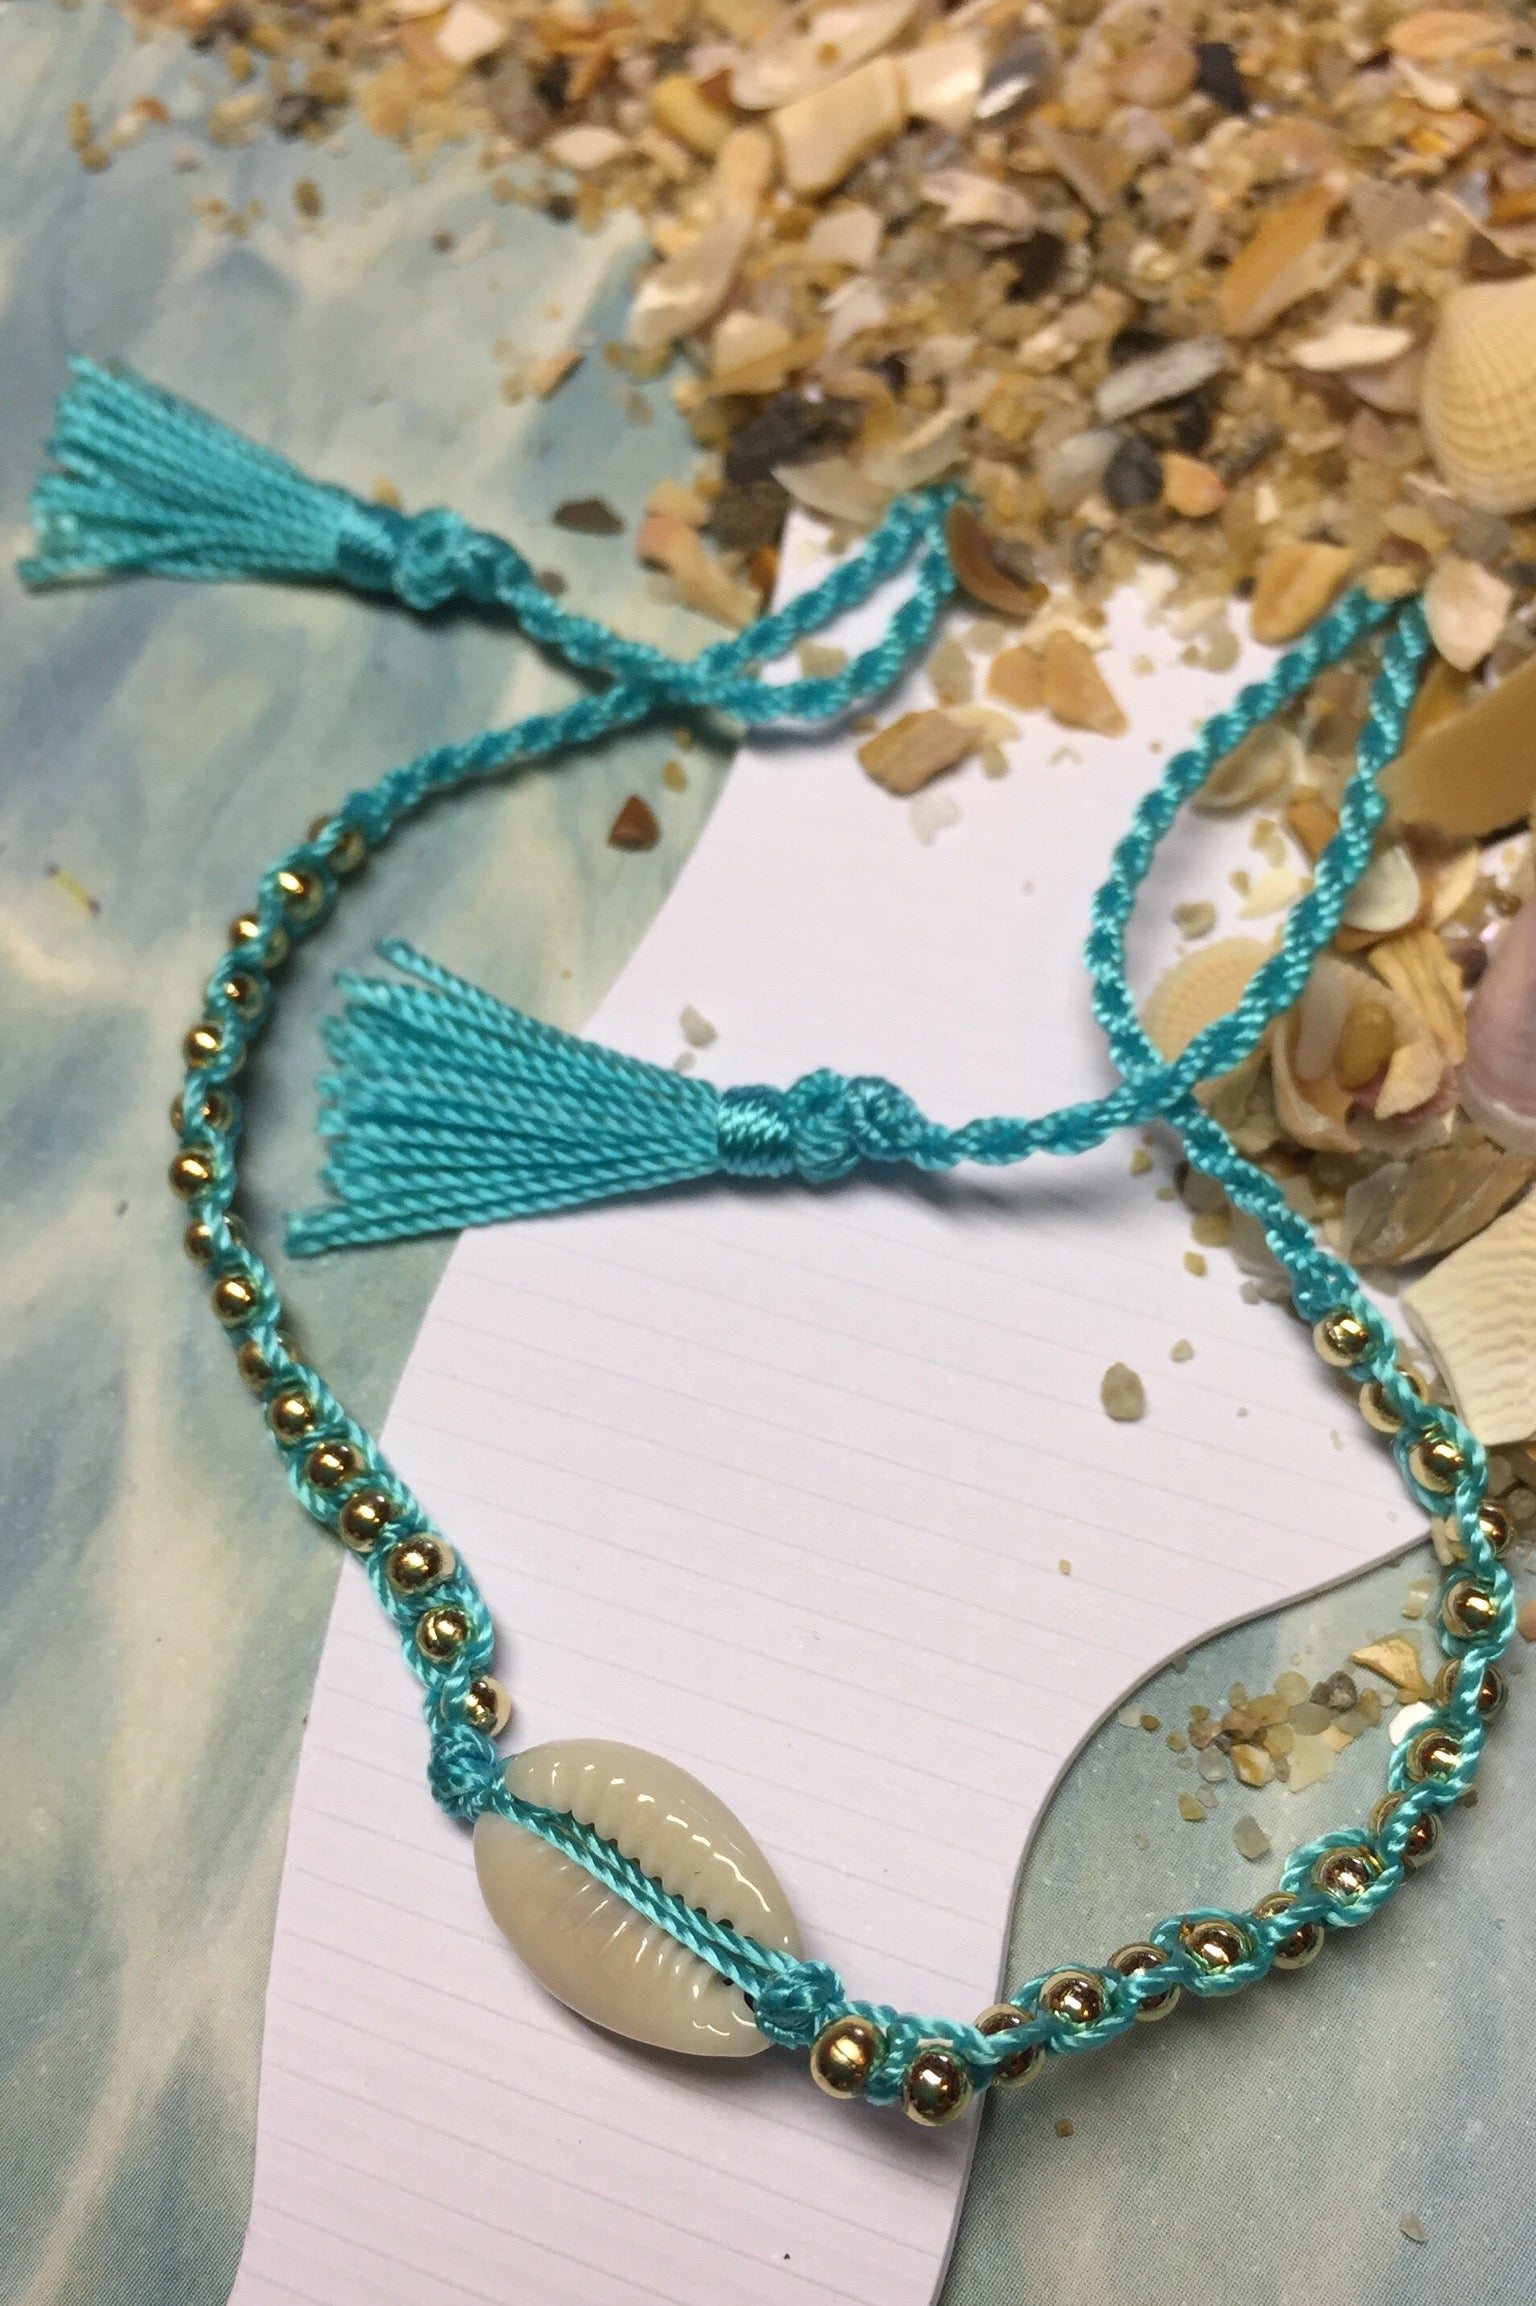 Boho Beach Anklet with beads, hippie ankle decoration, cowrie shell bracelet